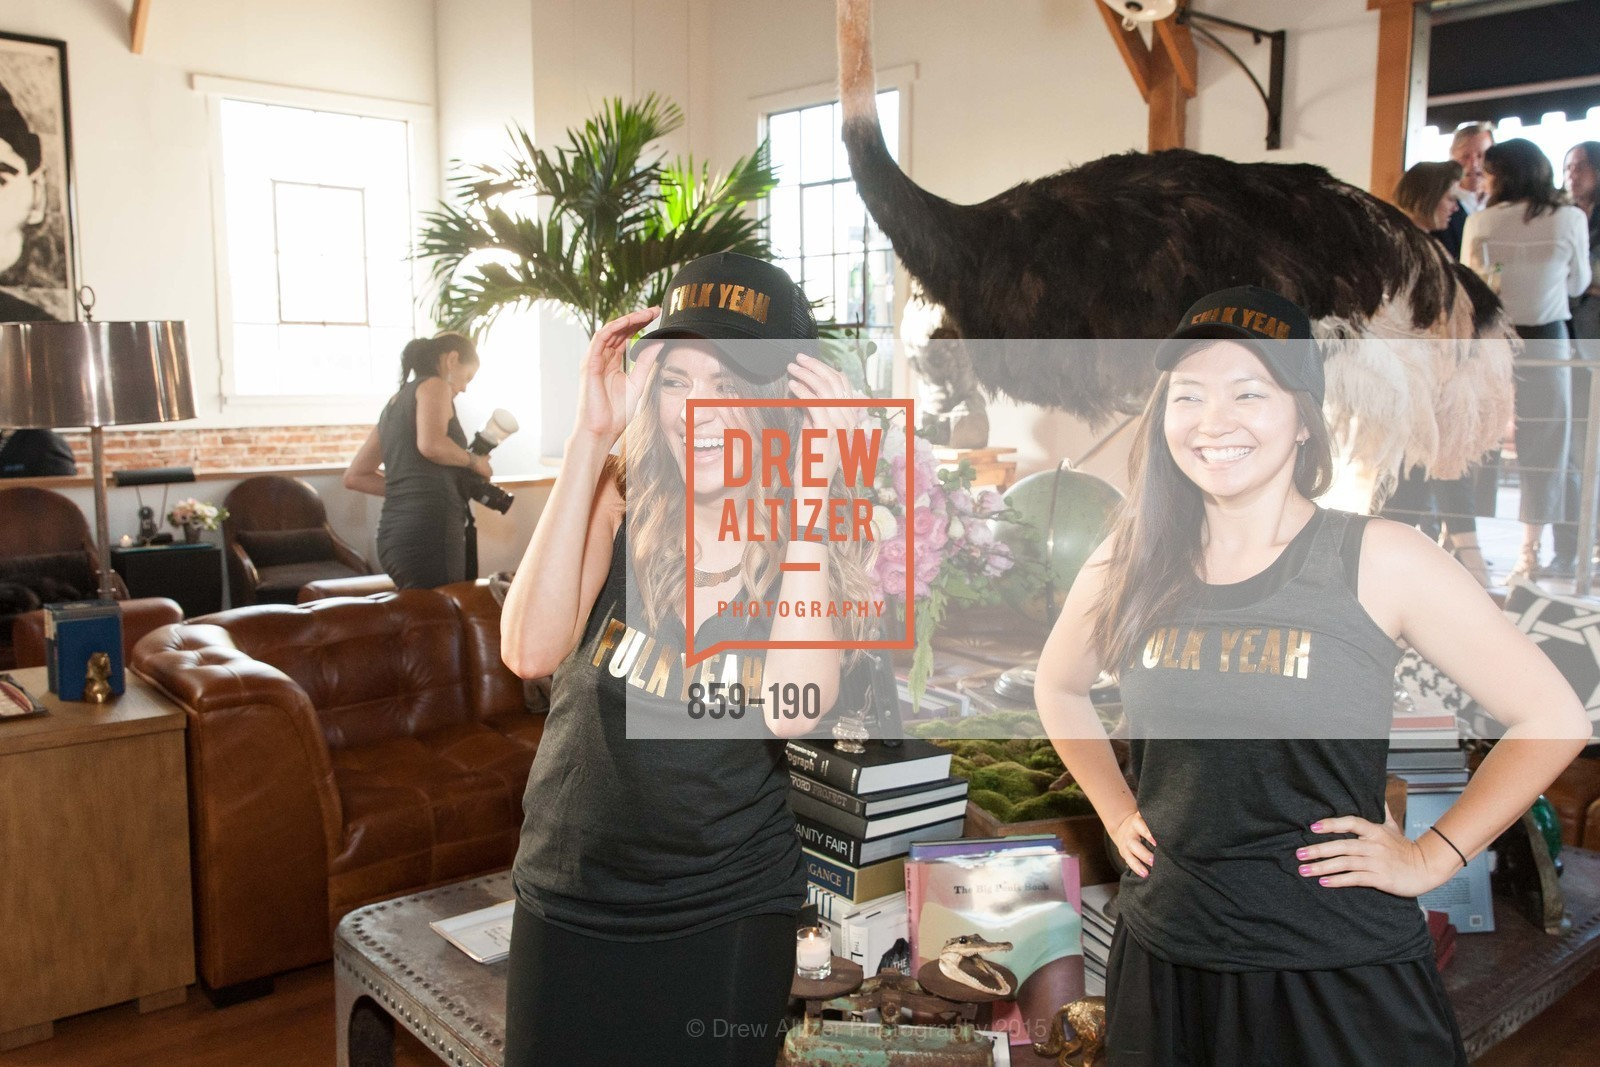 Cynthia Fuentes, Andie Nishita, KEN FULK'S New Furniture Line Unveiling at THE MAGIC FACTORY, The Magic Factory. 310 7th St, June 25th, 2015,Drew Altizer, Drew Altizer Photography, full-service agency, private events, San Francisco photographer, photographer california